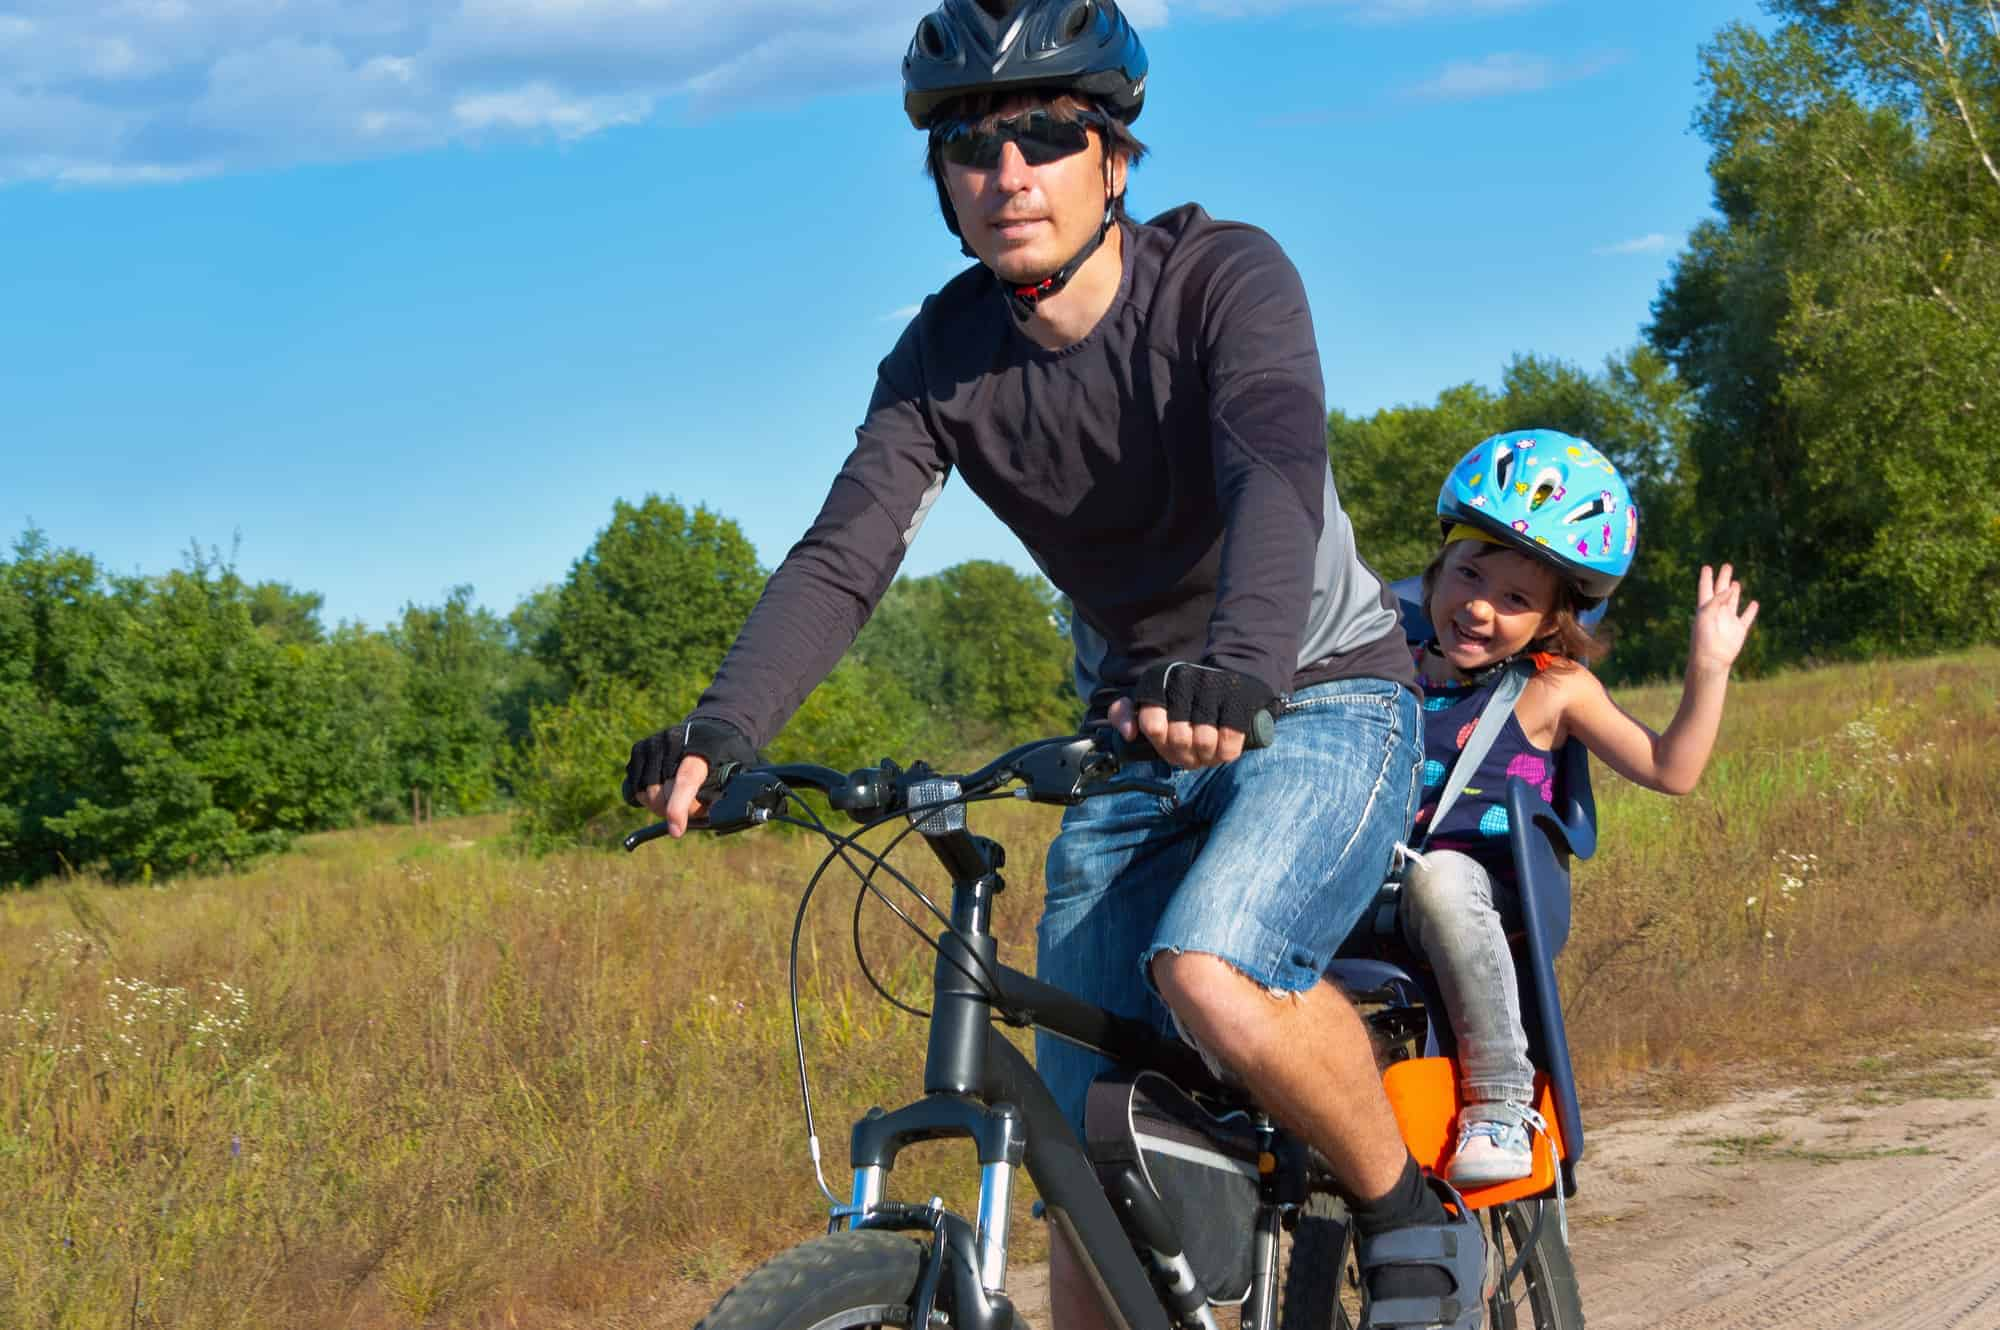 We review the best baby bike seats including the Thule Yepp Maxi